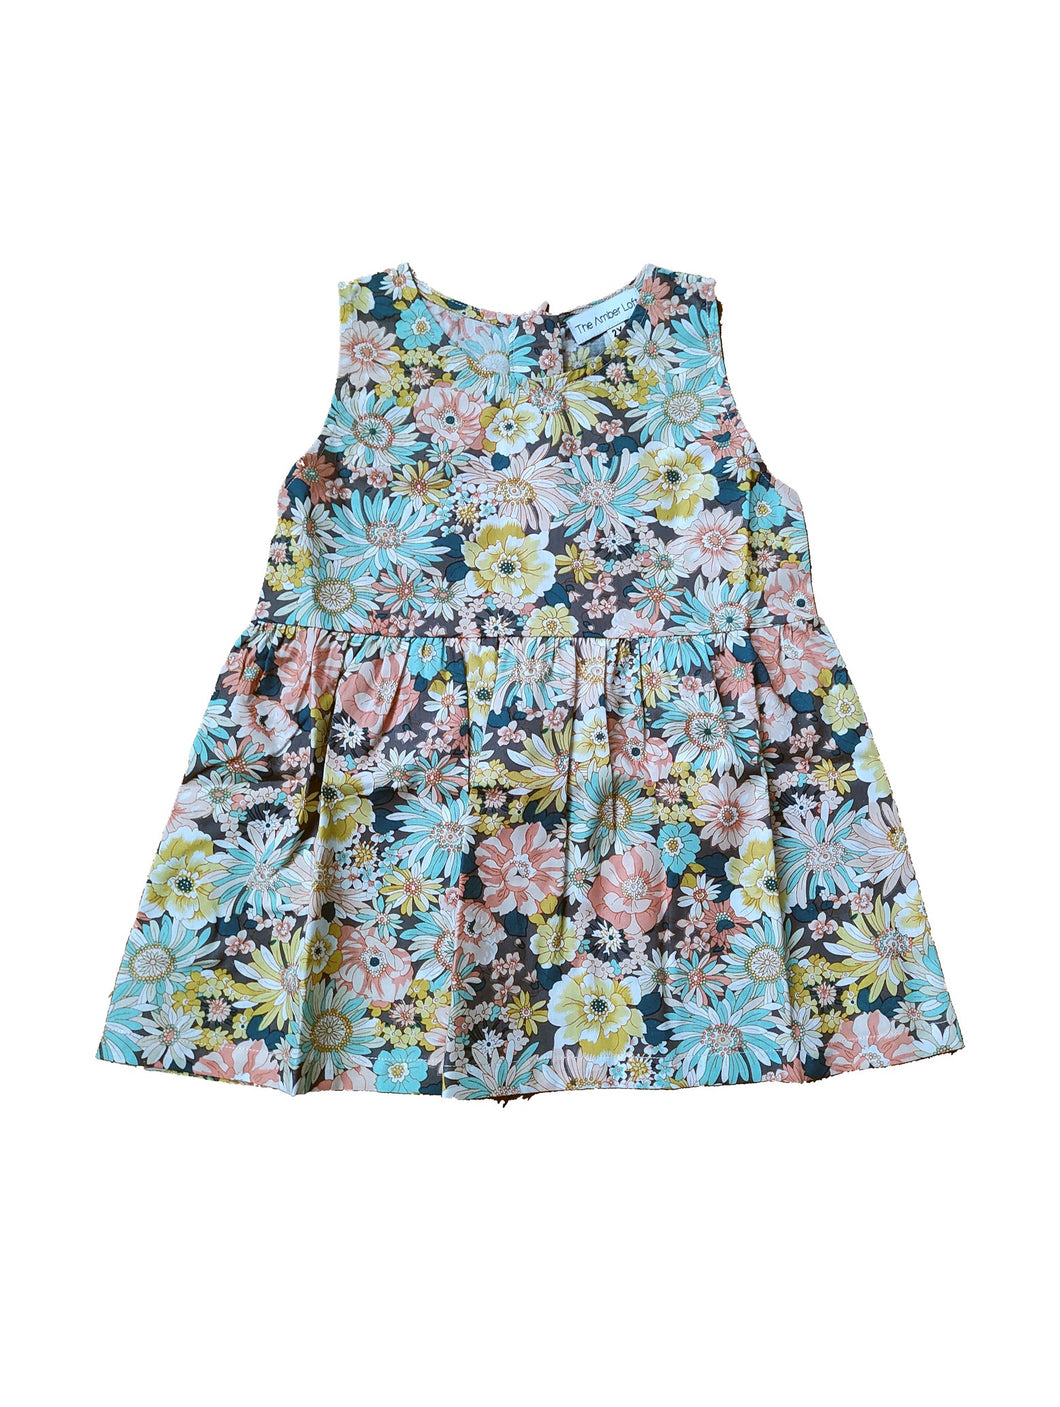 Arabella Girl's Dress